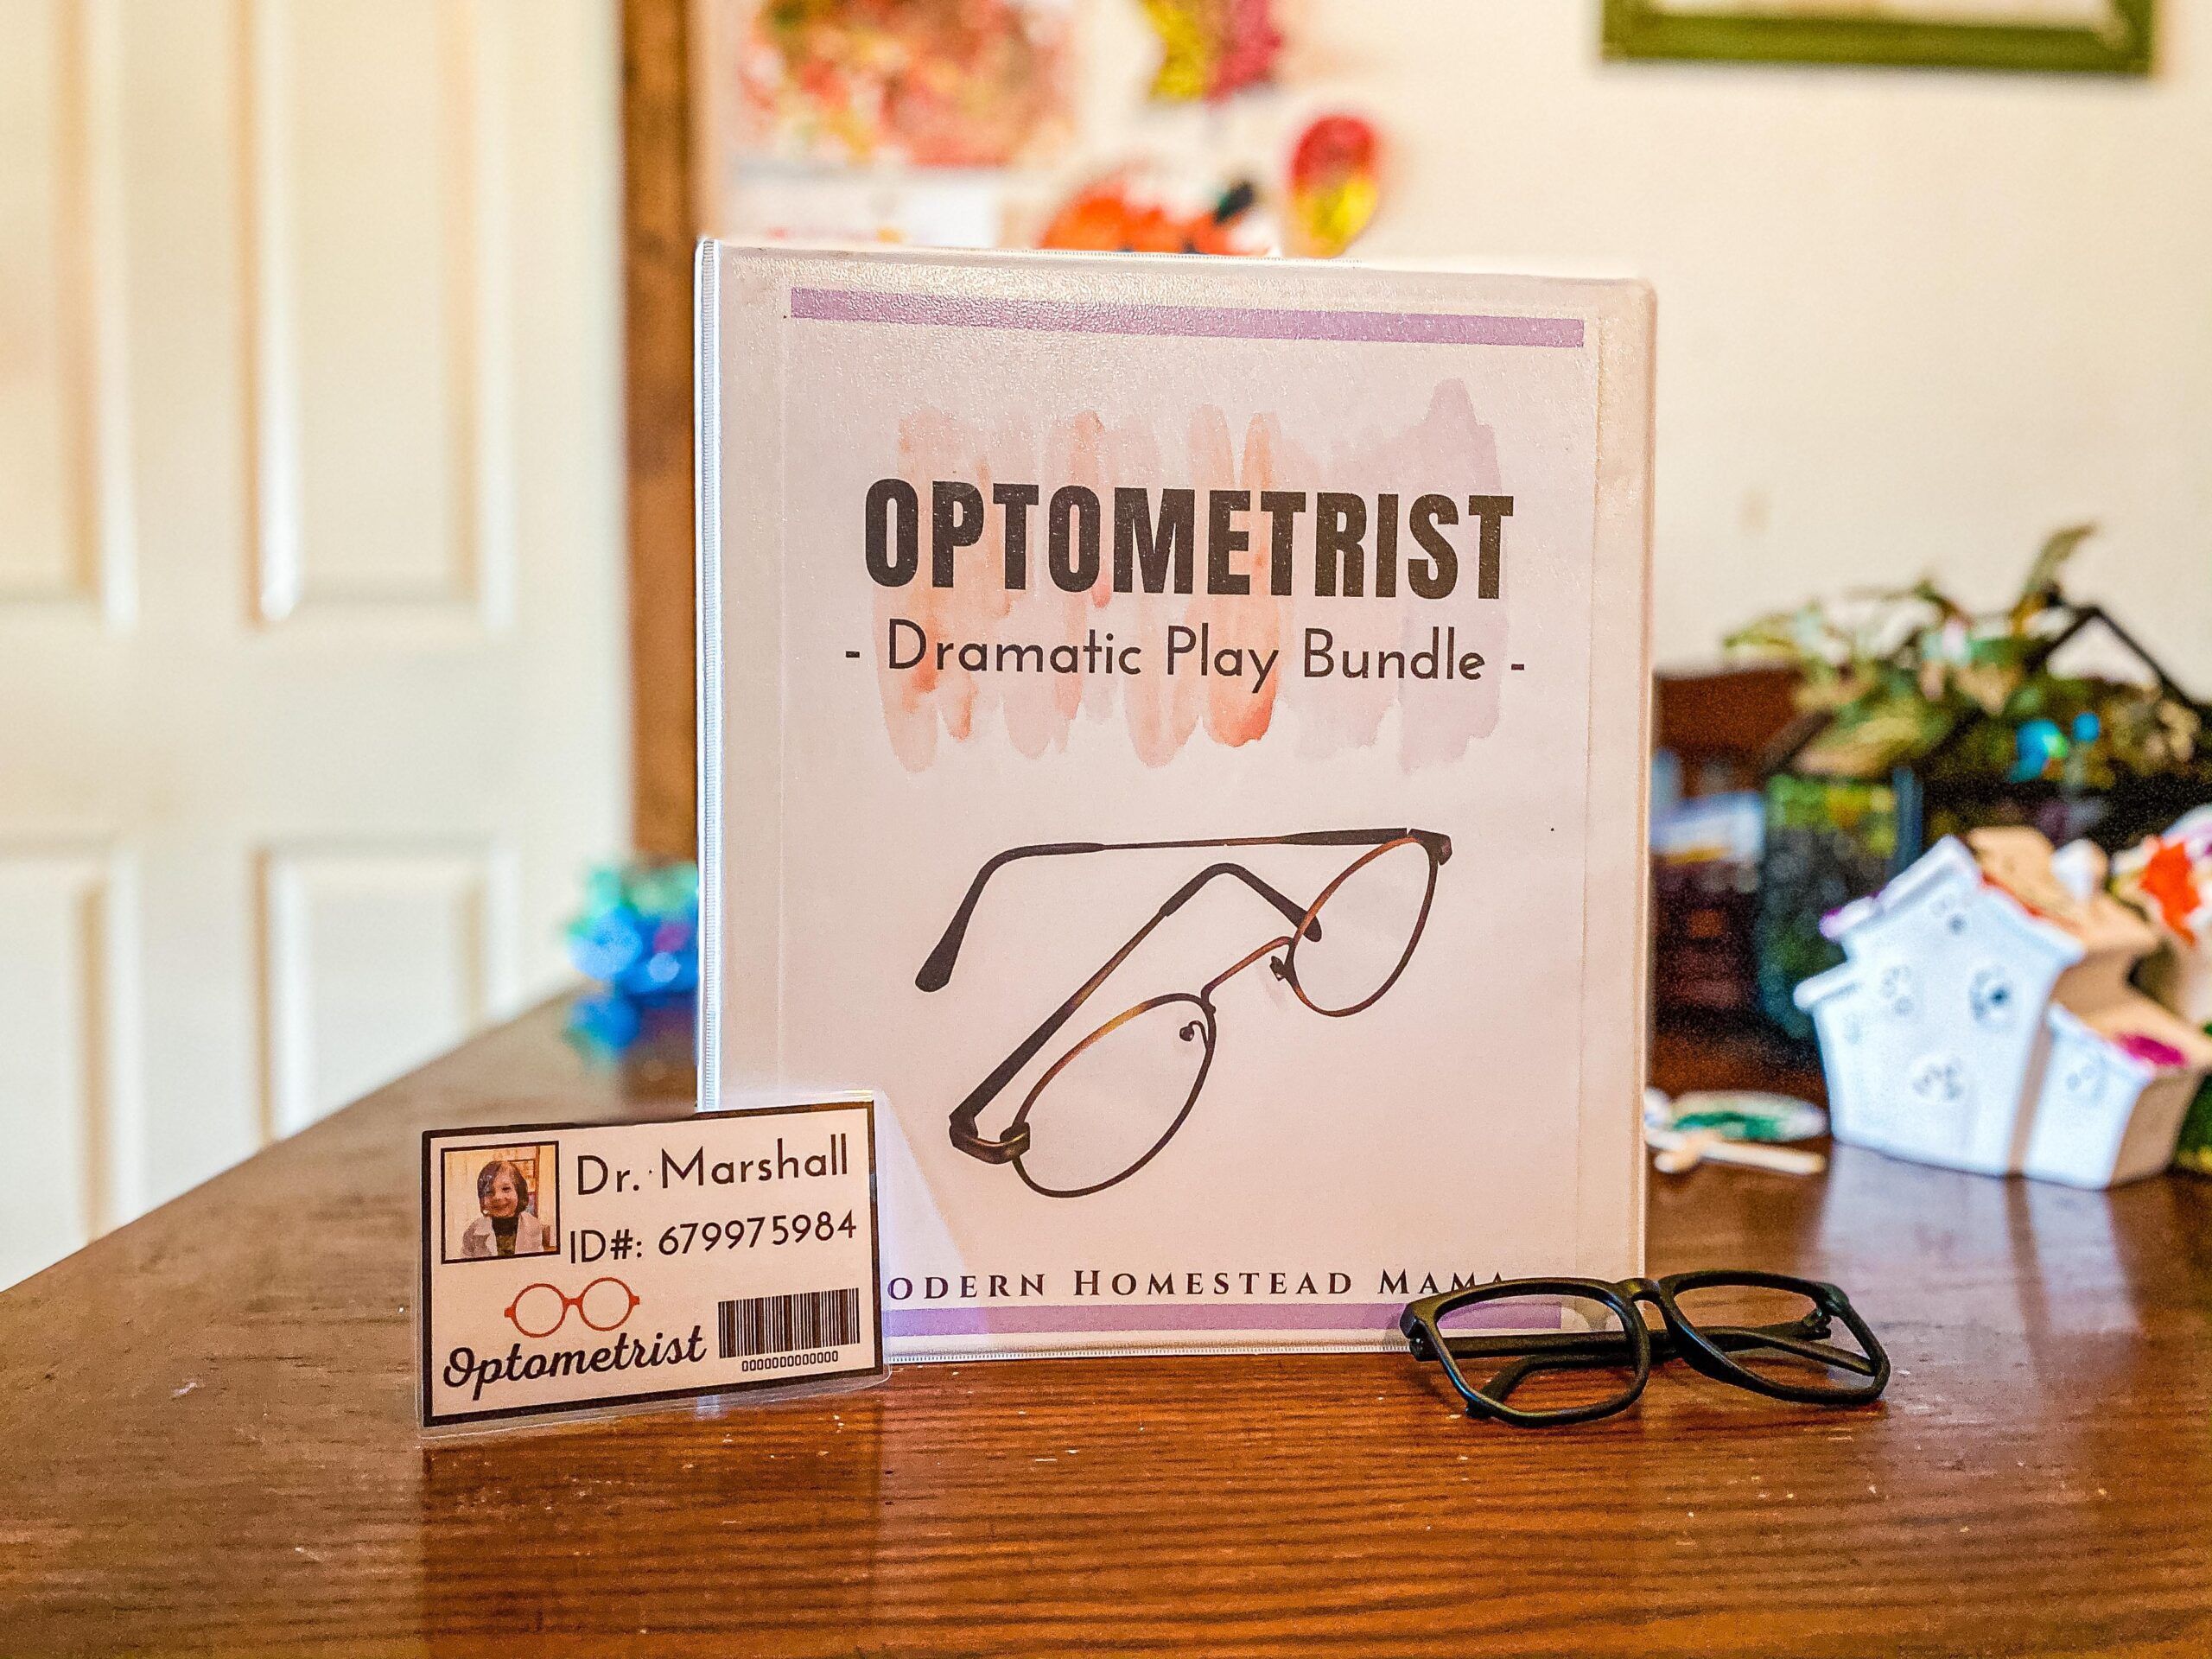 Optometrist Dramatic Play Bundle